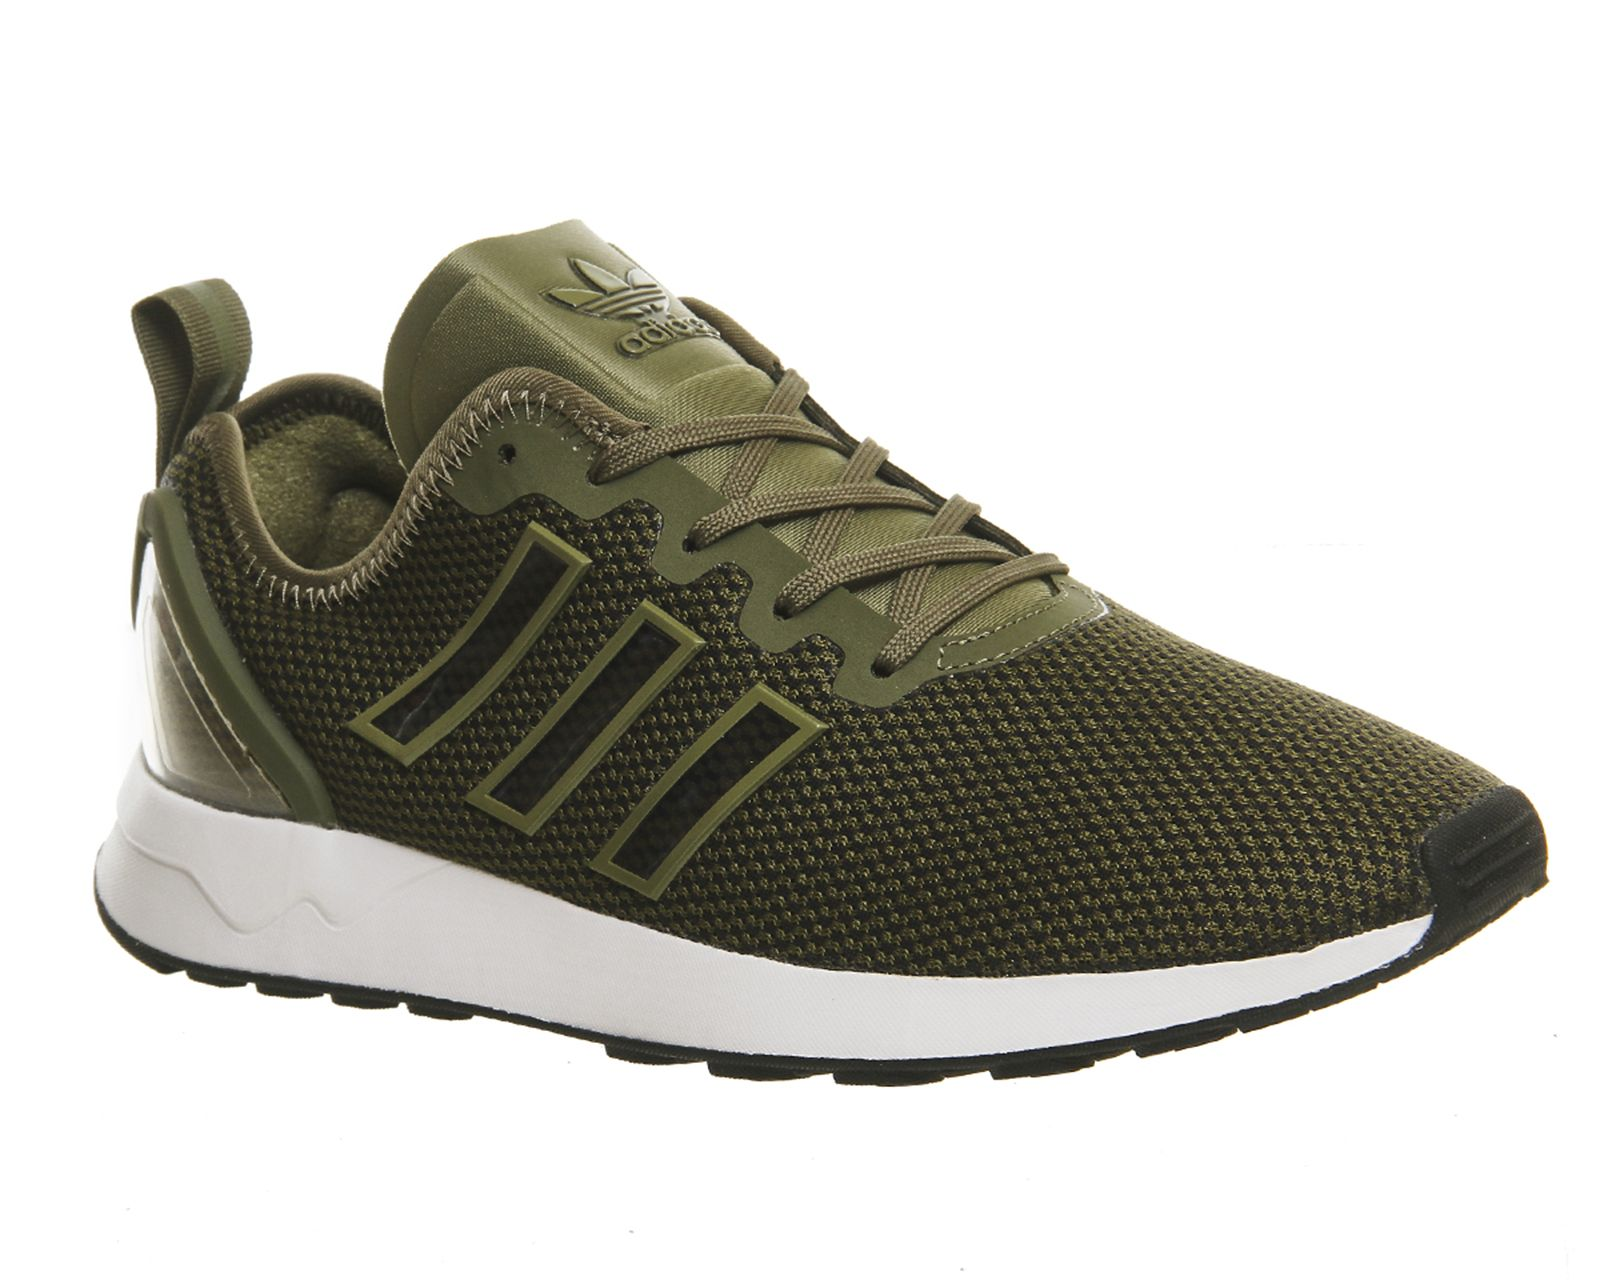 new product 7b51e 8b8fa Buy Olive Cargo Adidas Zx Flux Racer from OFFICE.co.uk ...